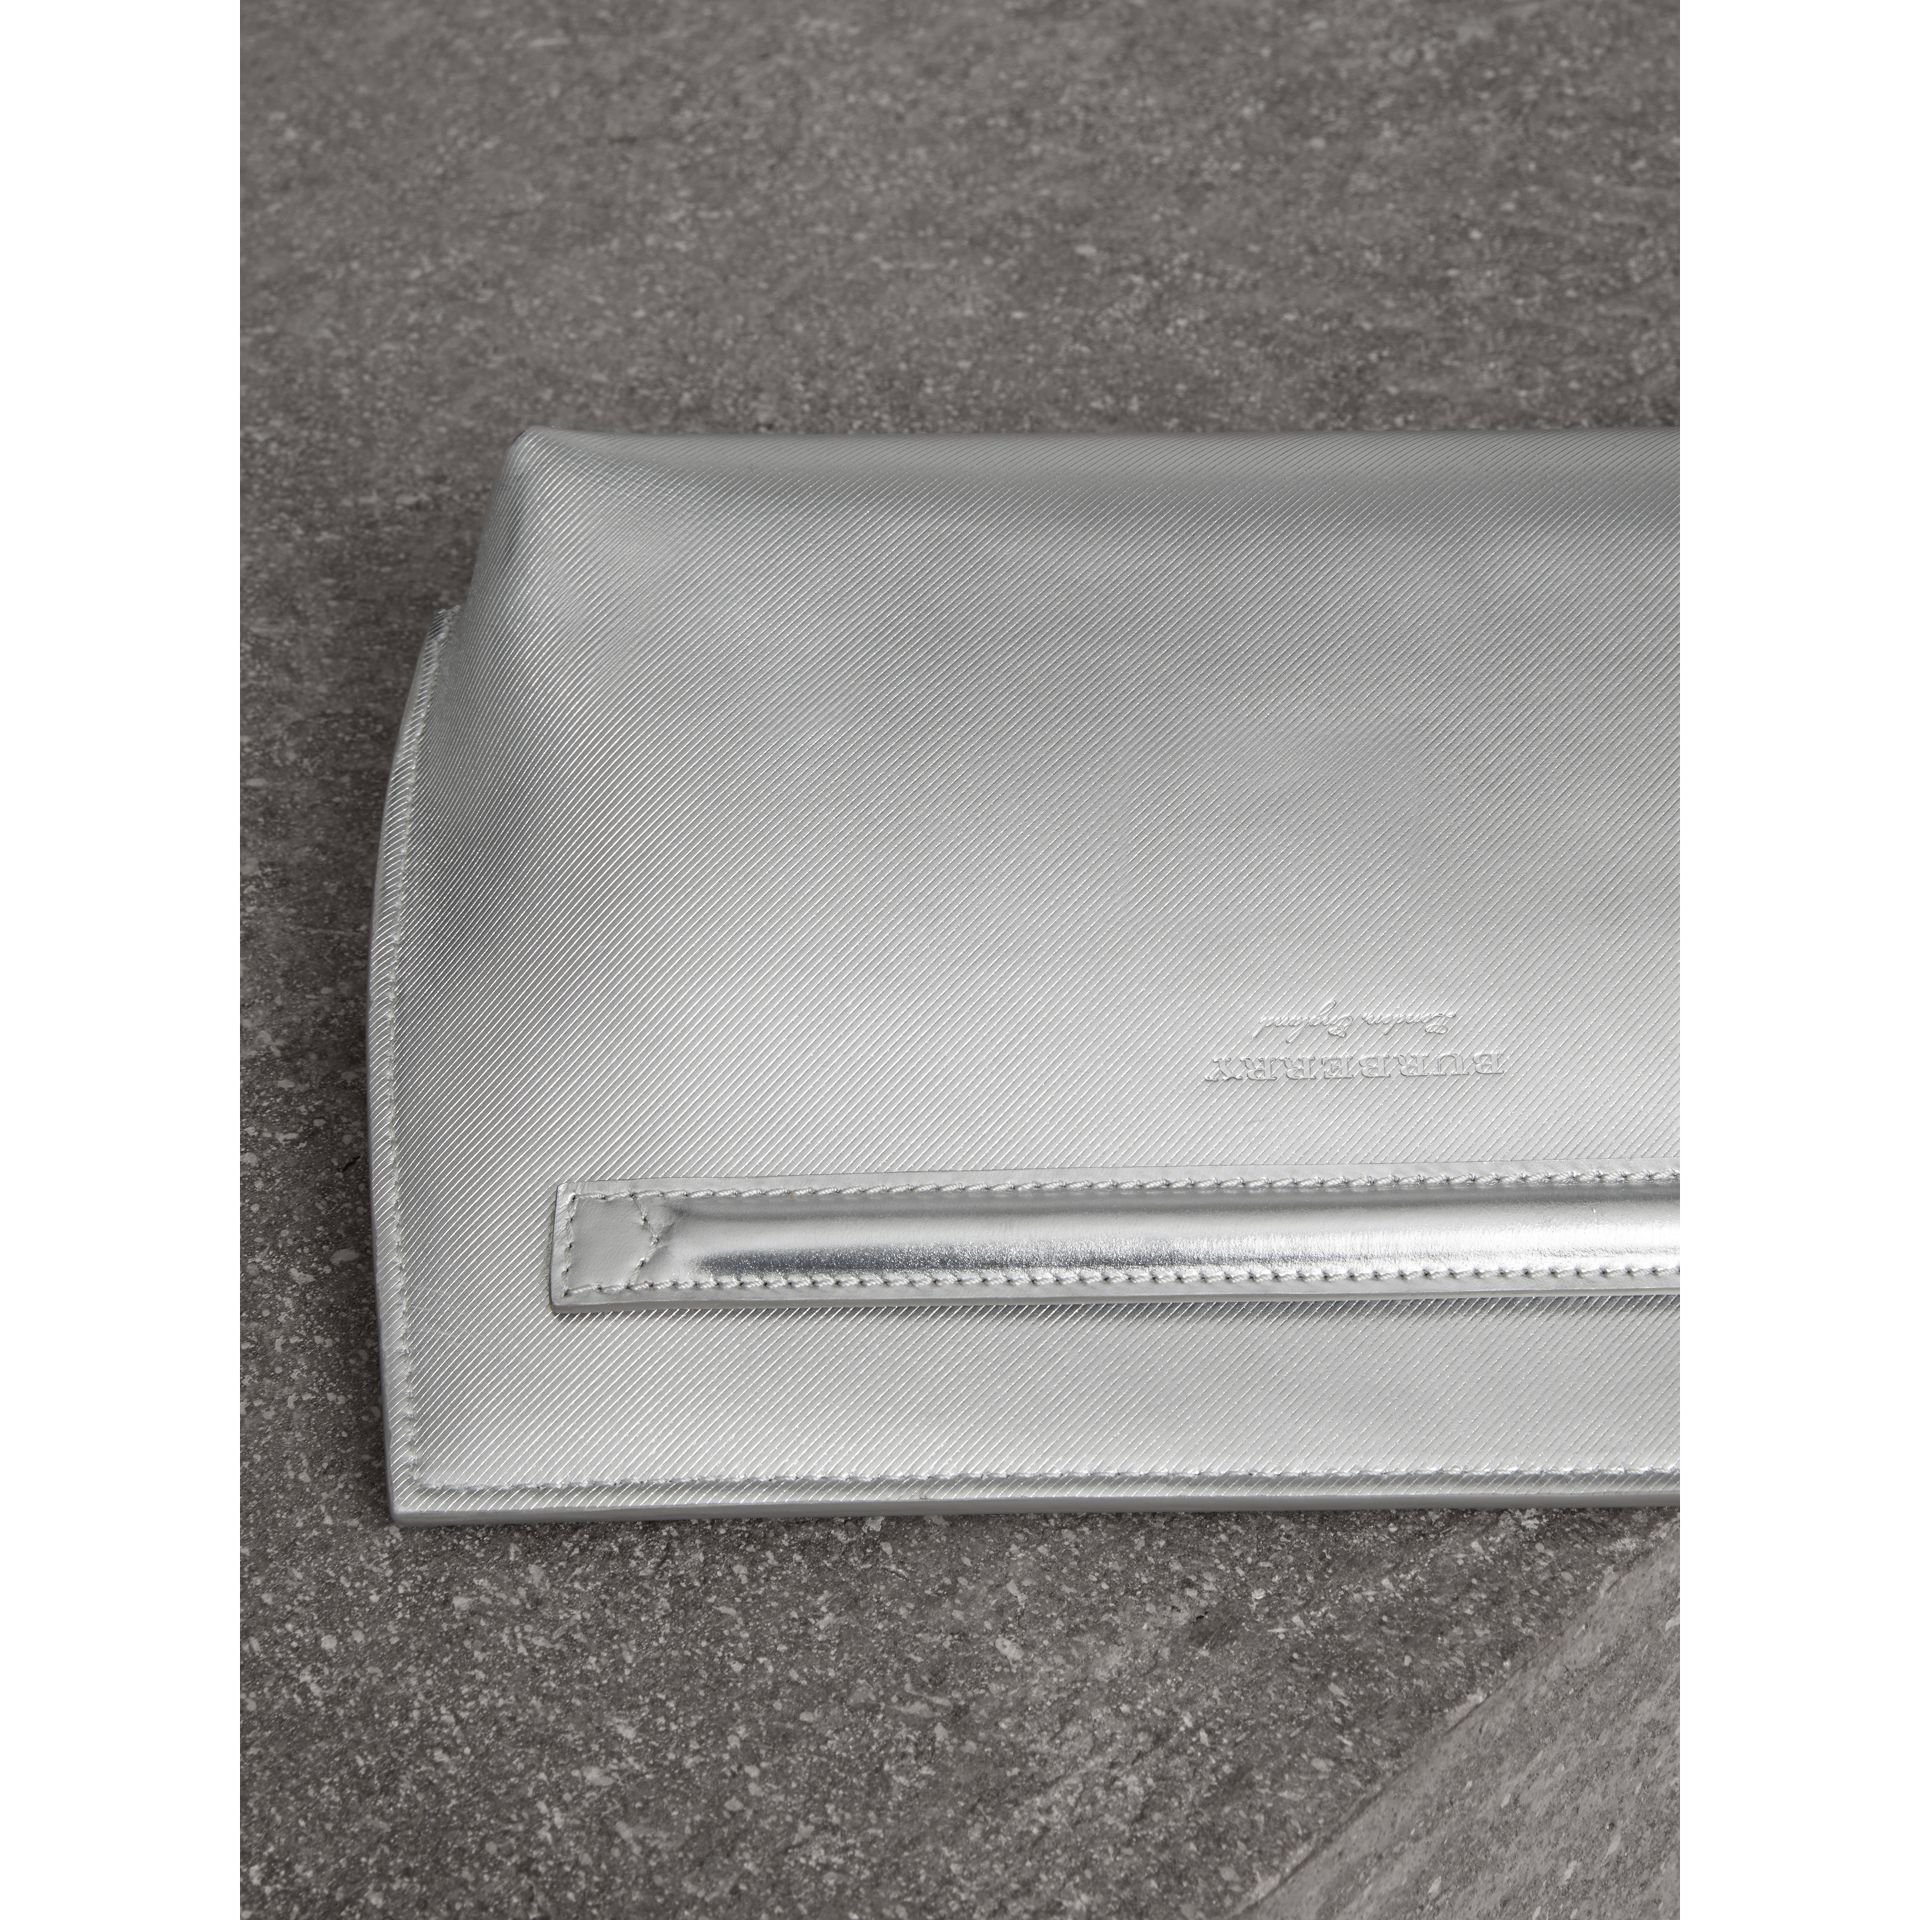 Metallic Trench Leather Pouch in Silver - Women | Burberry United States - gallery image 3